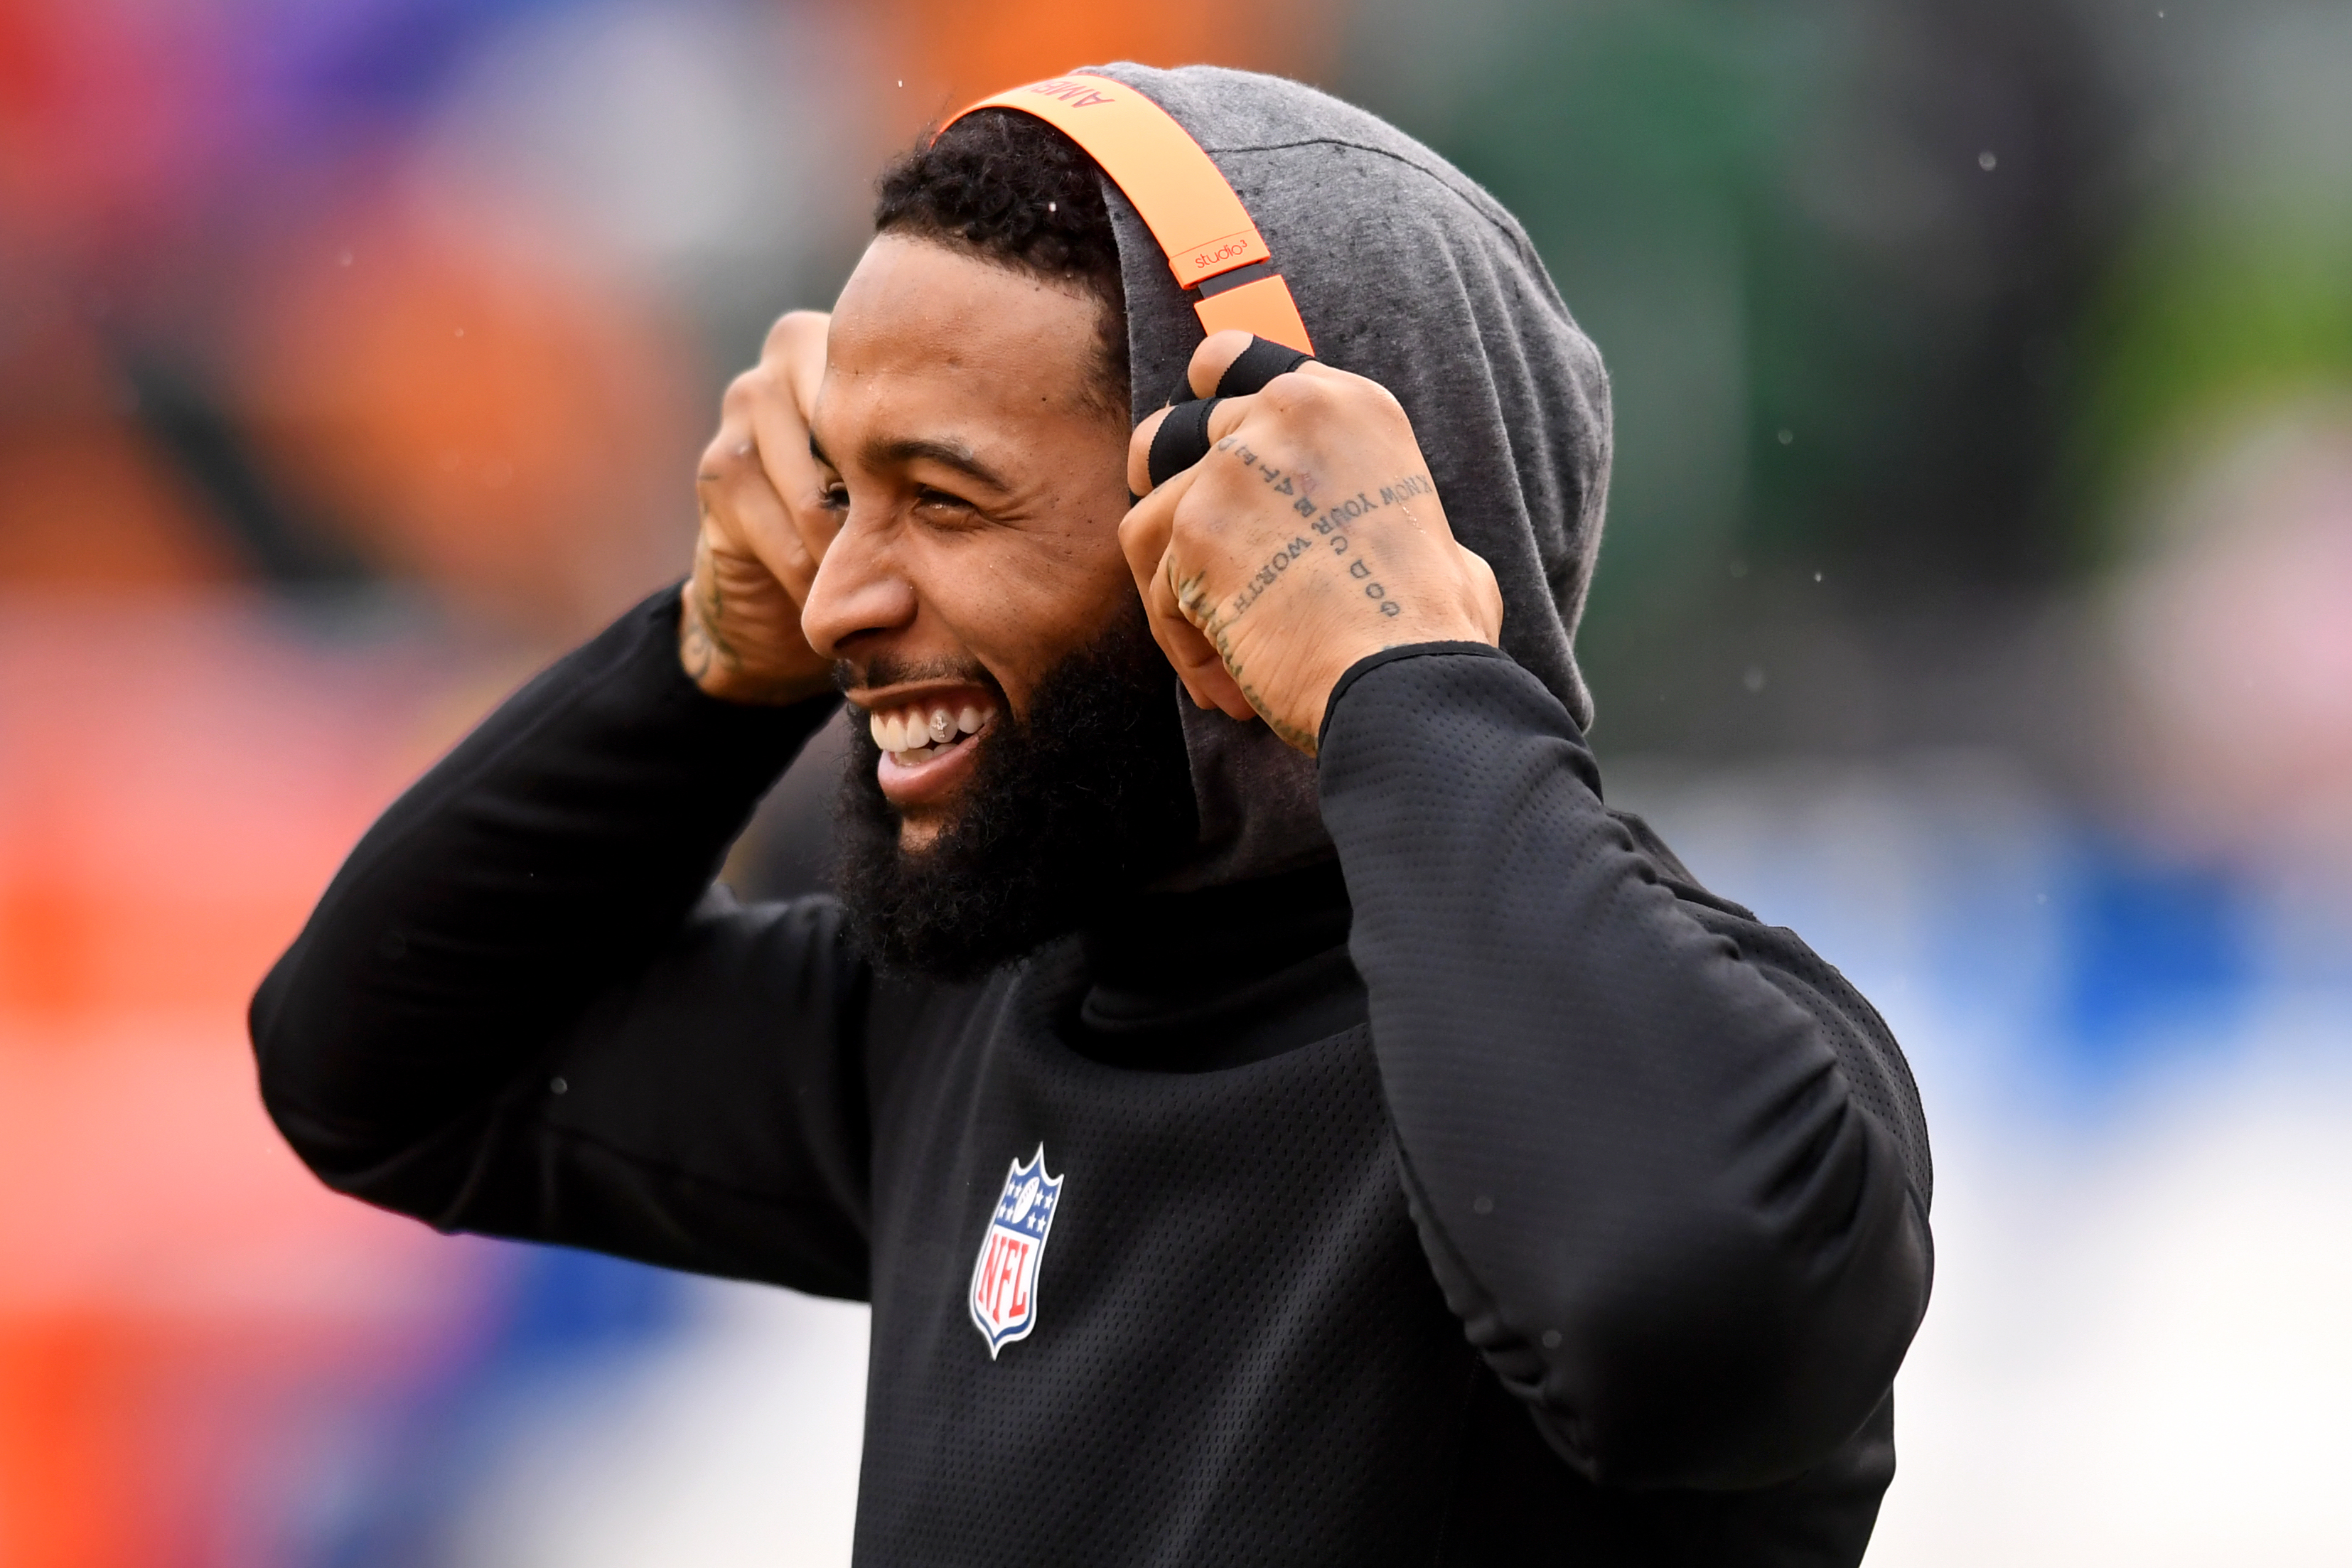 Odell Beckham Jr. puts on his Bose headphones